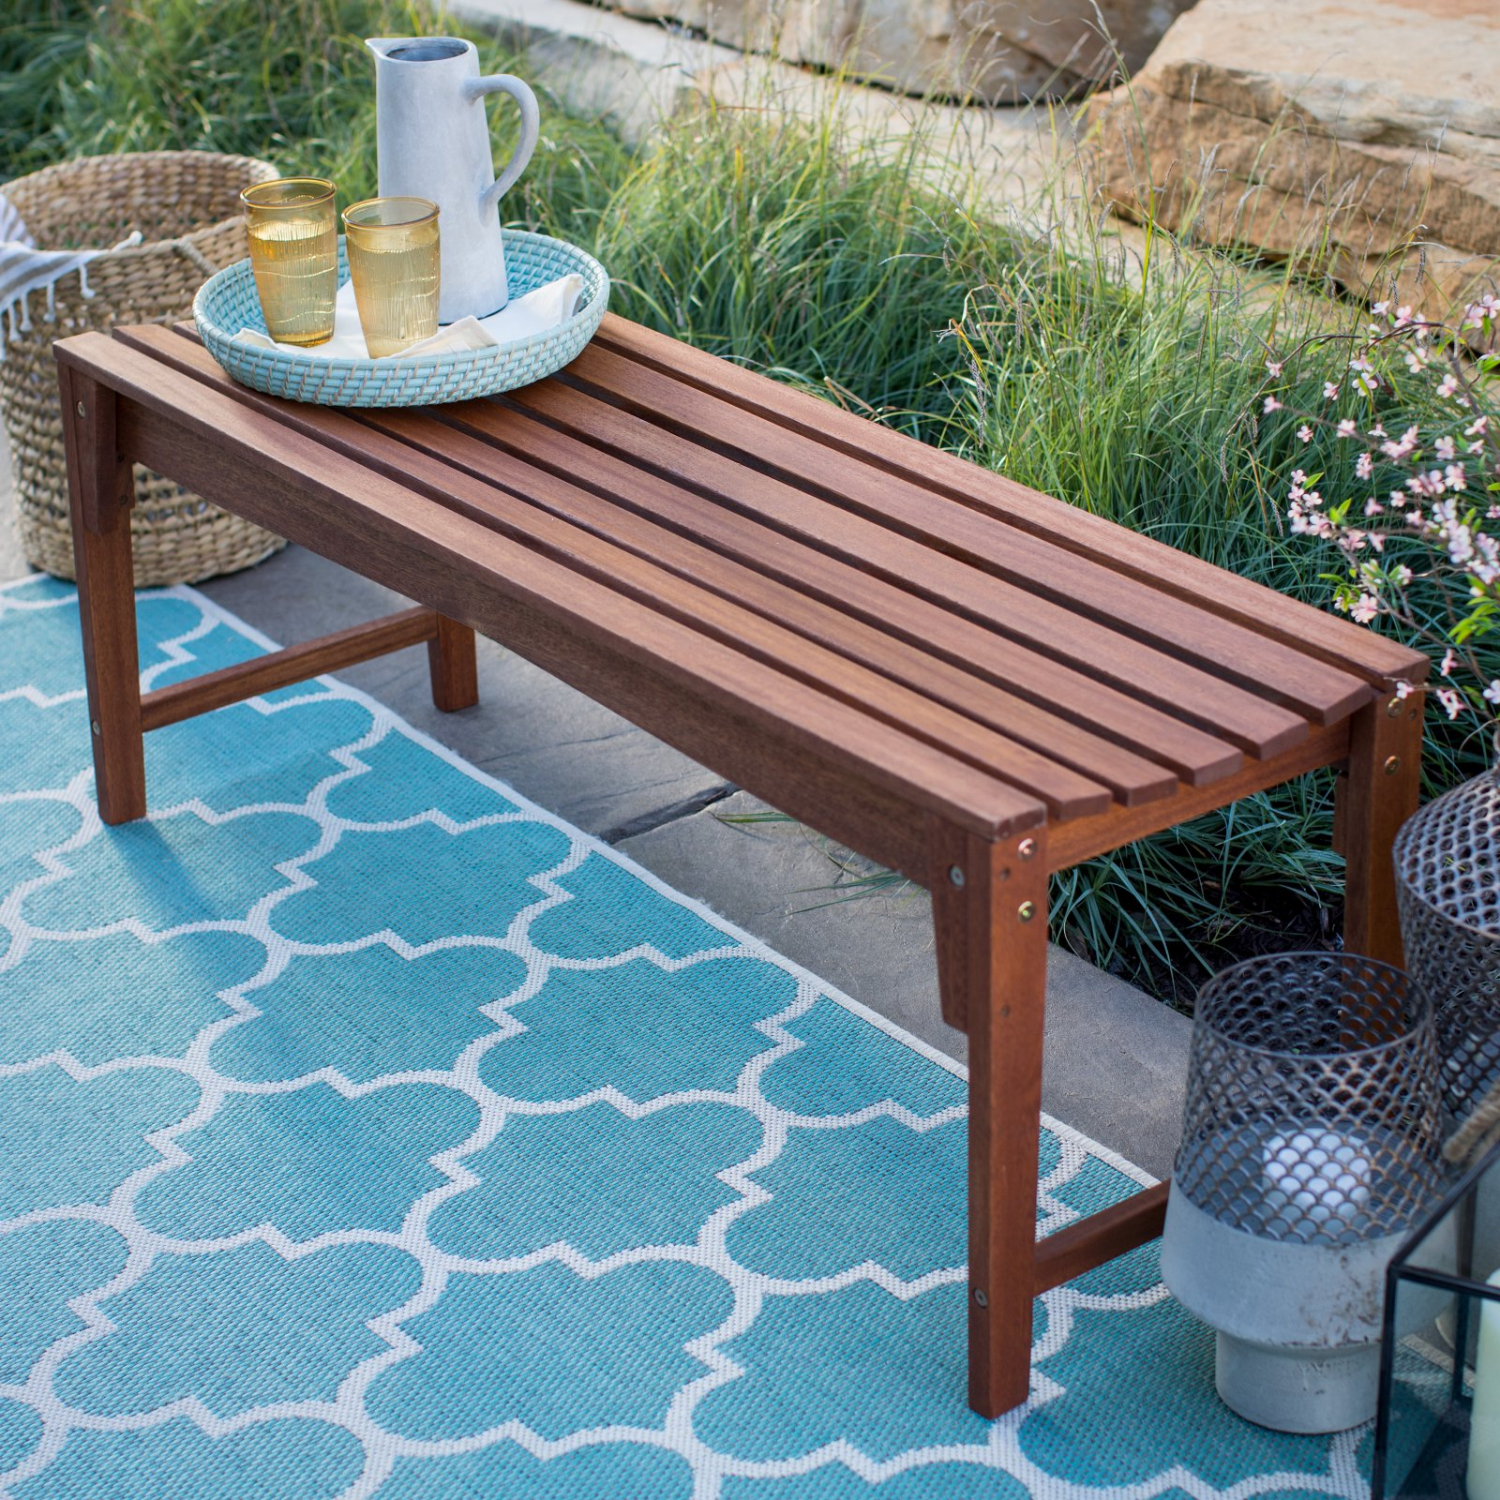 Miraculous Details About 4 Ft Slat Backless Outdoor Garden Wood Bench Patio Deck Poolside Porch Shower Dailytribune Chair Design For Home Dailytribuneorg